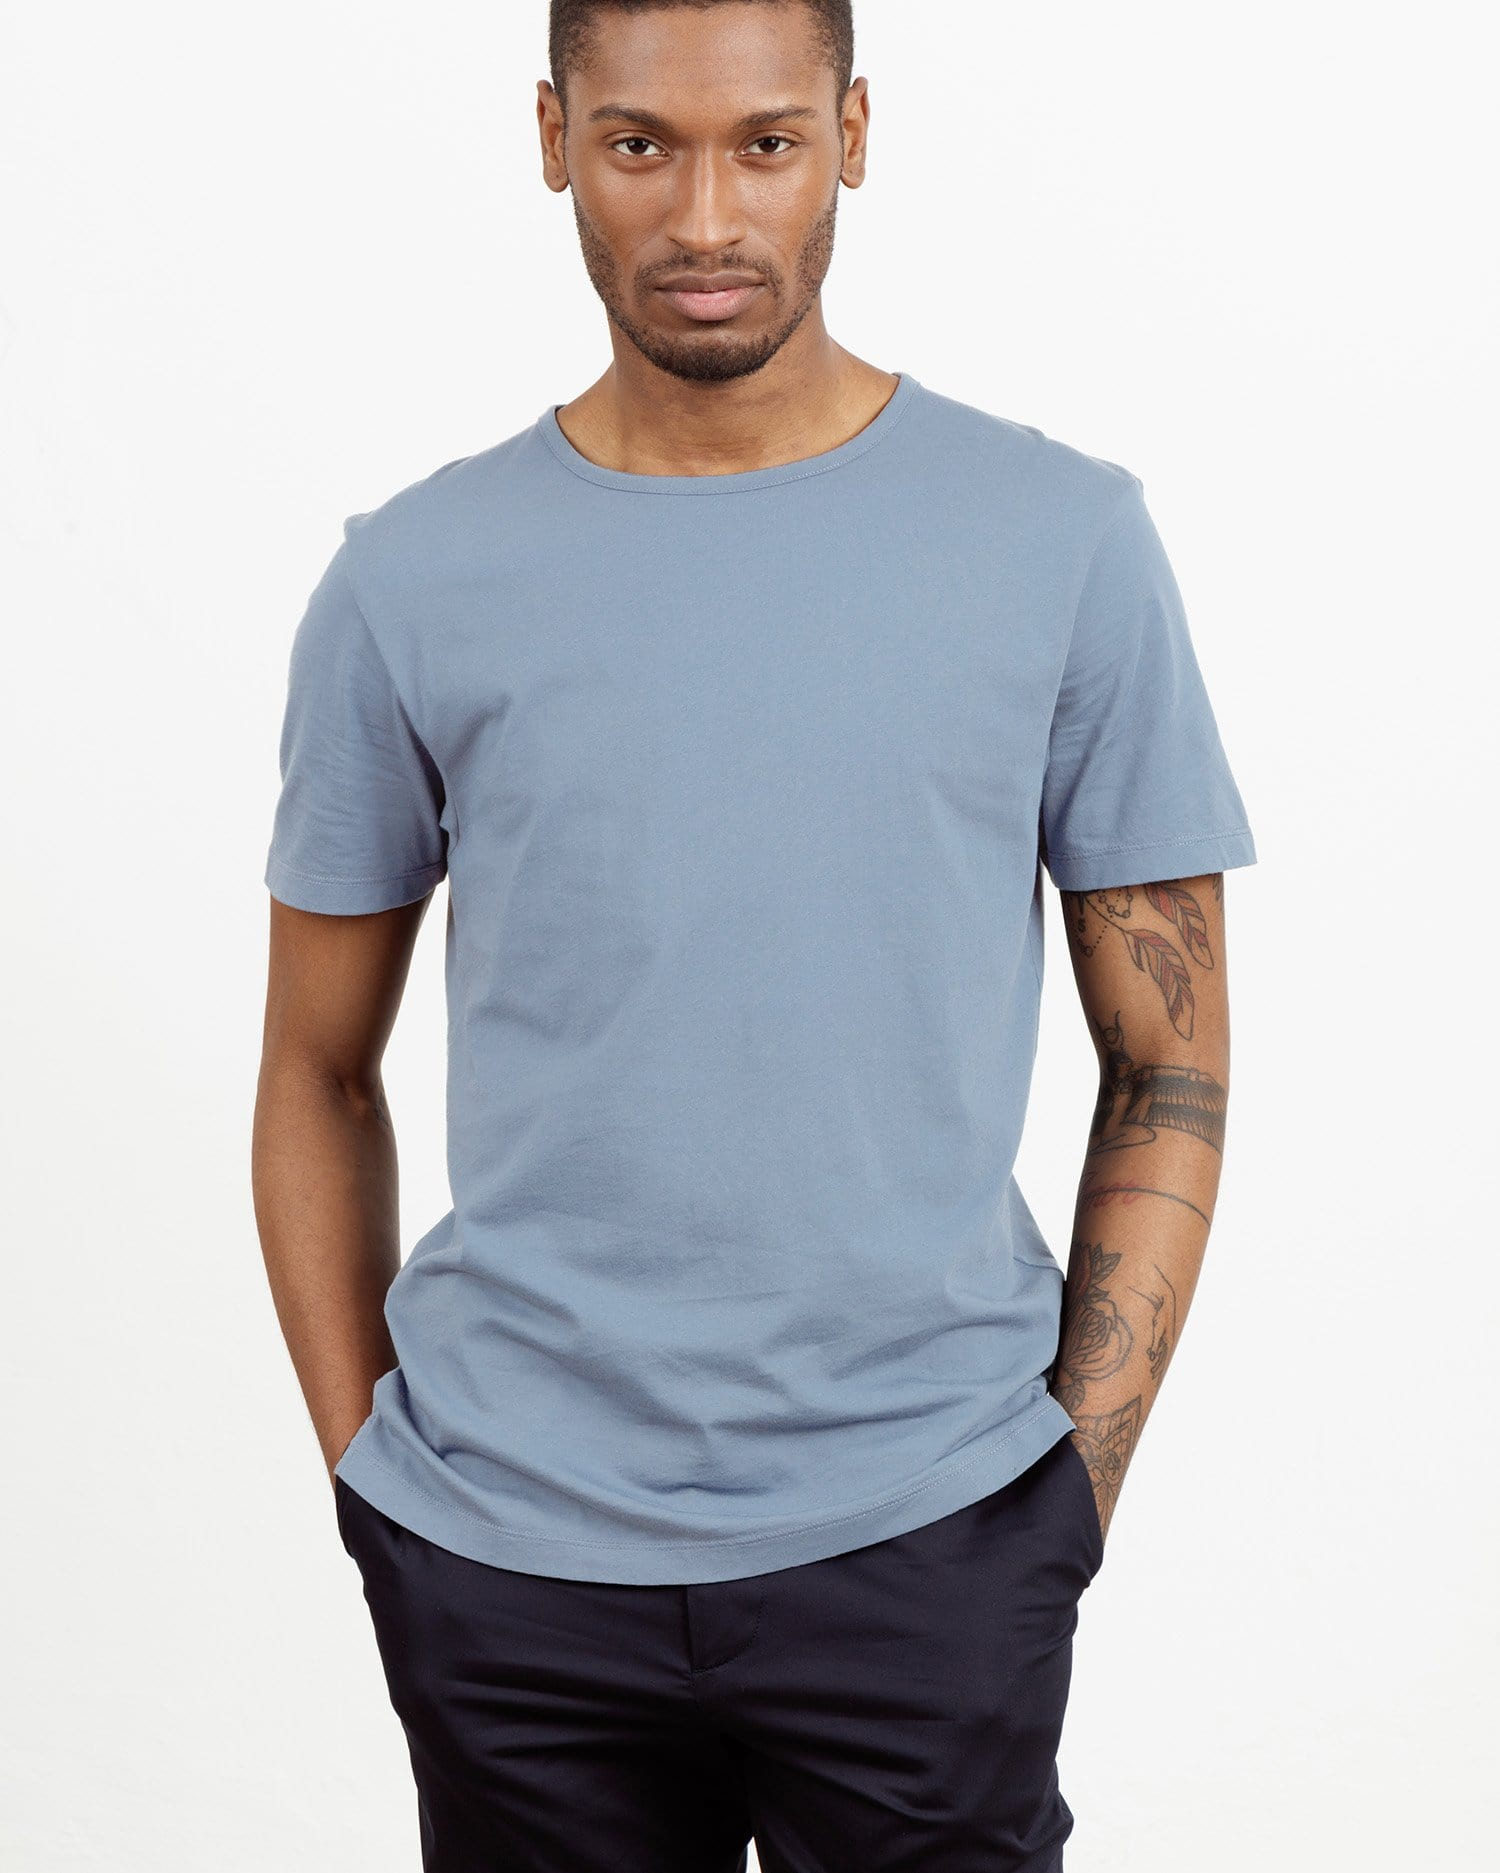 The Tailored Tee || Dusty-Blue | Supima Cotton